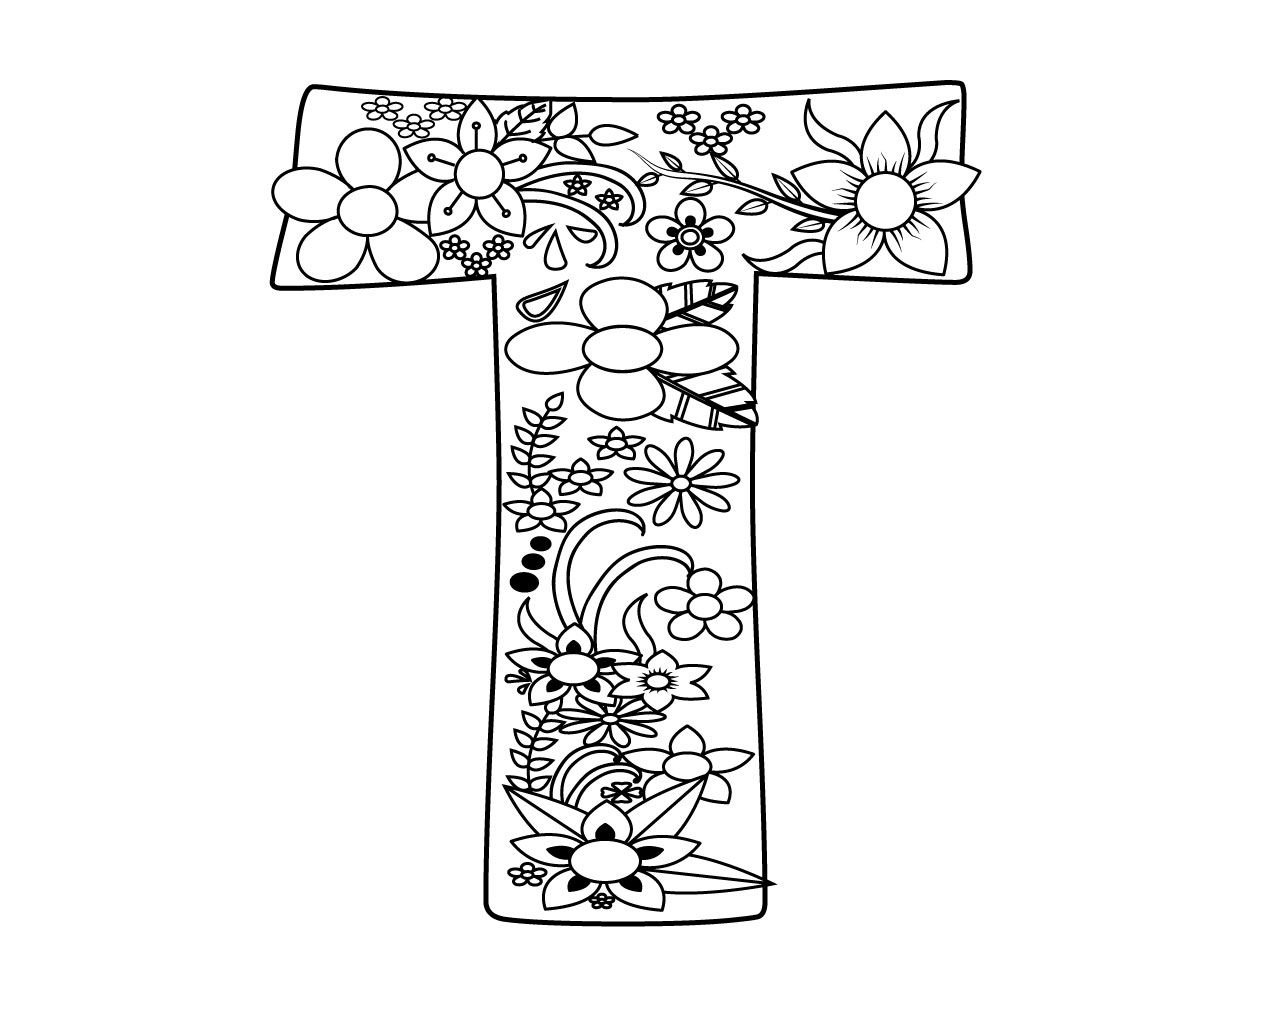 Letter T Coloring Pages For Adults Coloring Pages Alphabet Coloring Pages Coloring Pages For Kids